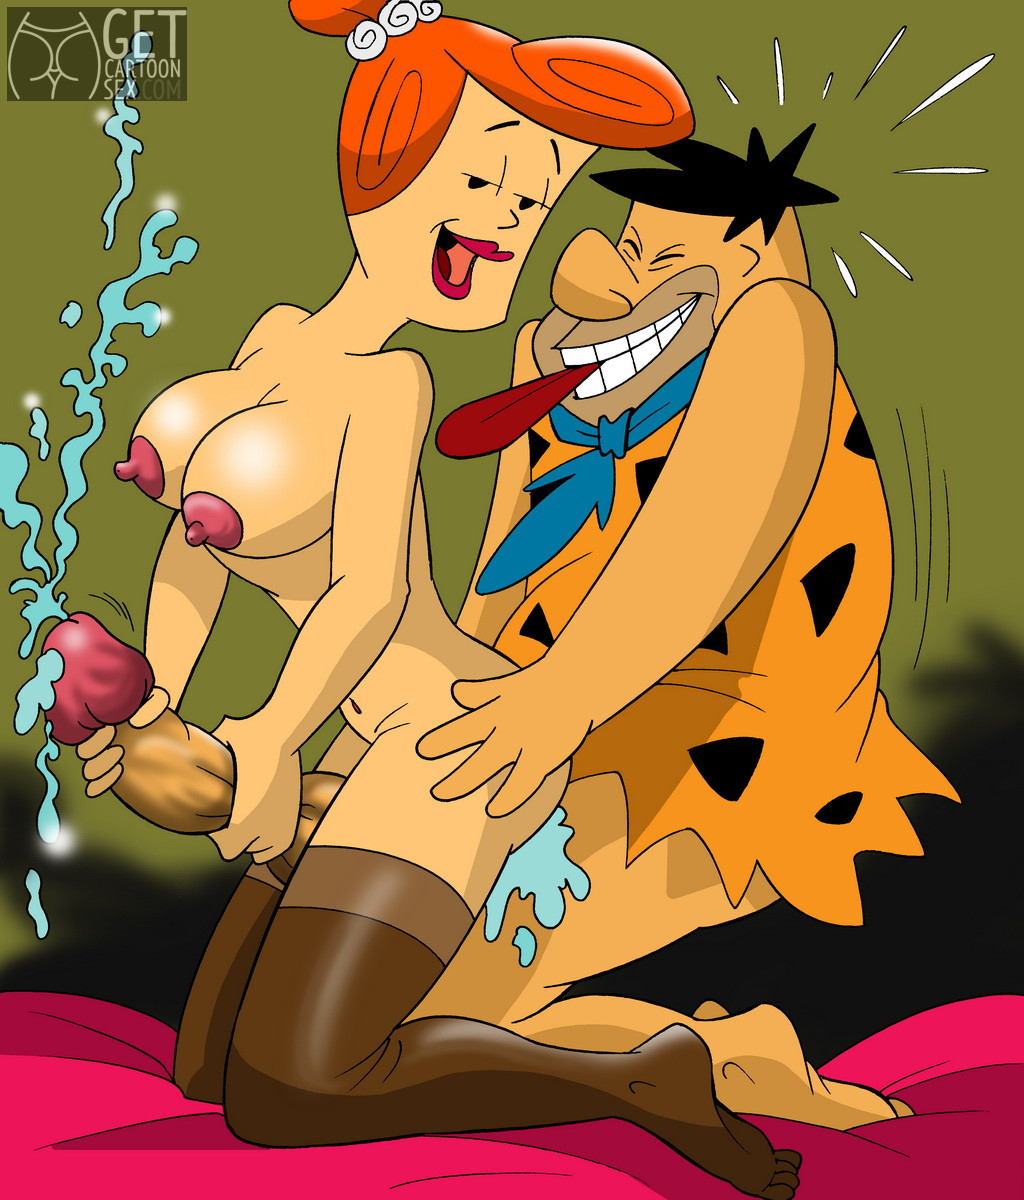 Free cartoon flintstones and jetsons sex pics